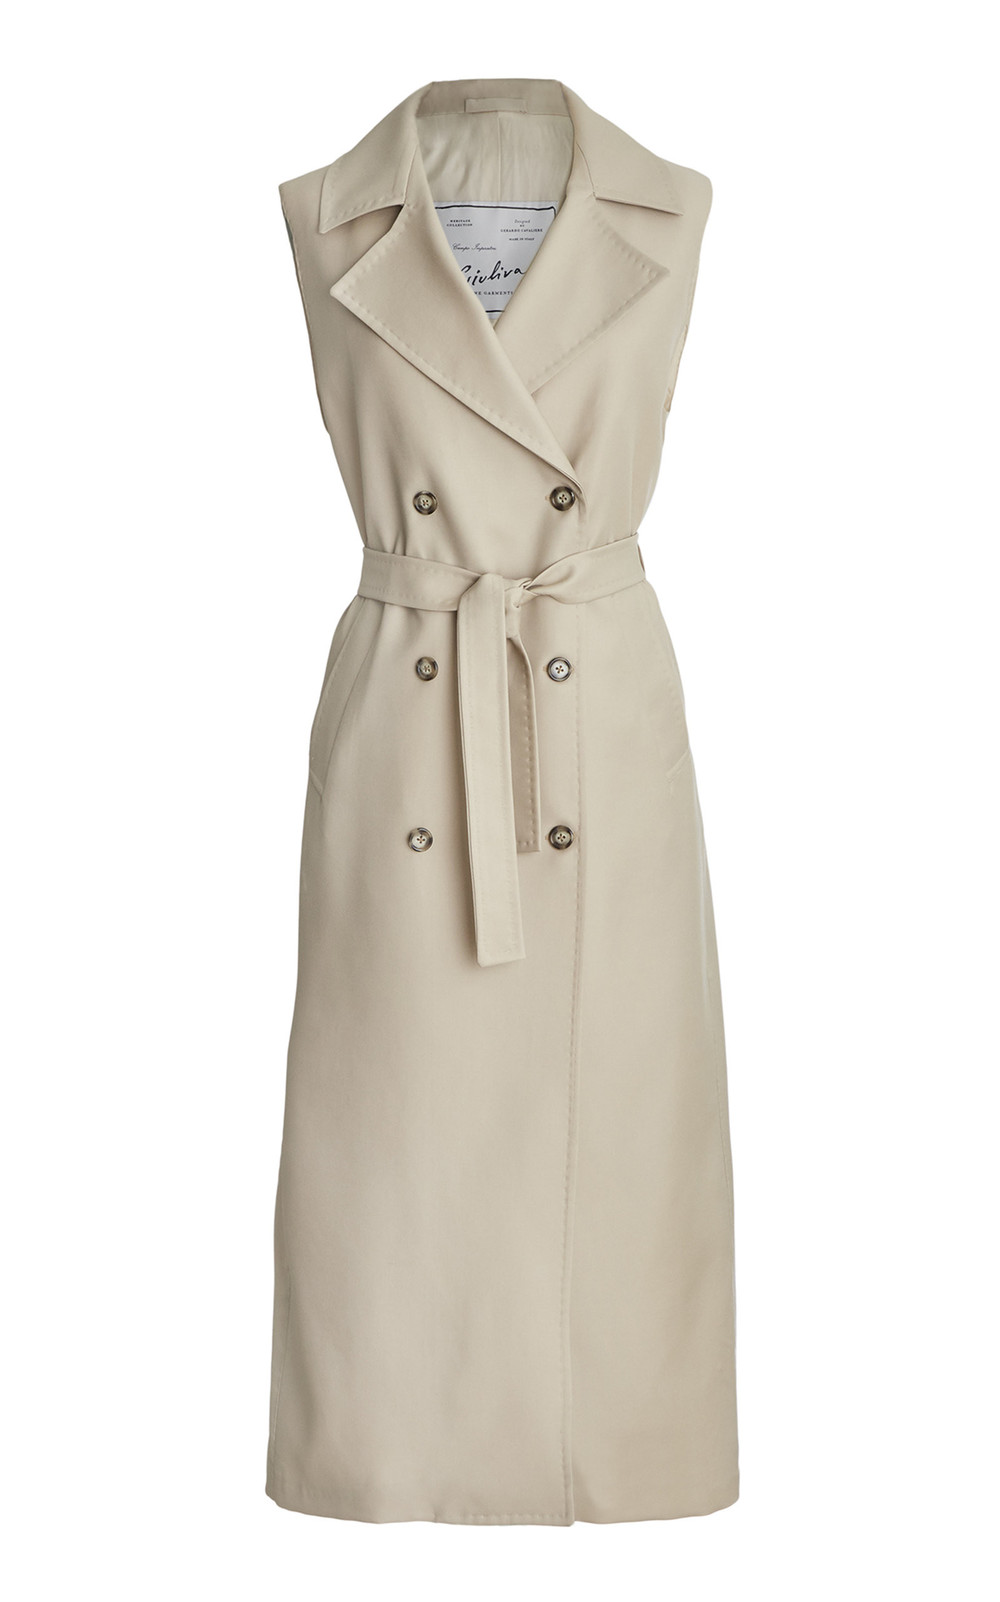 Giuliva Heritage Collection Sleeveless Trench Dress in neutral